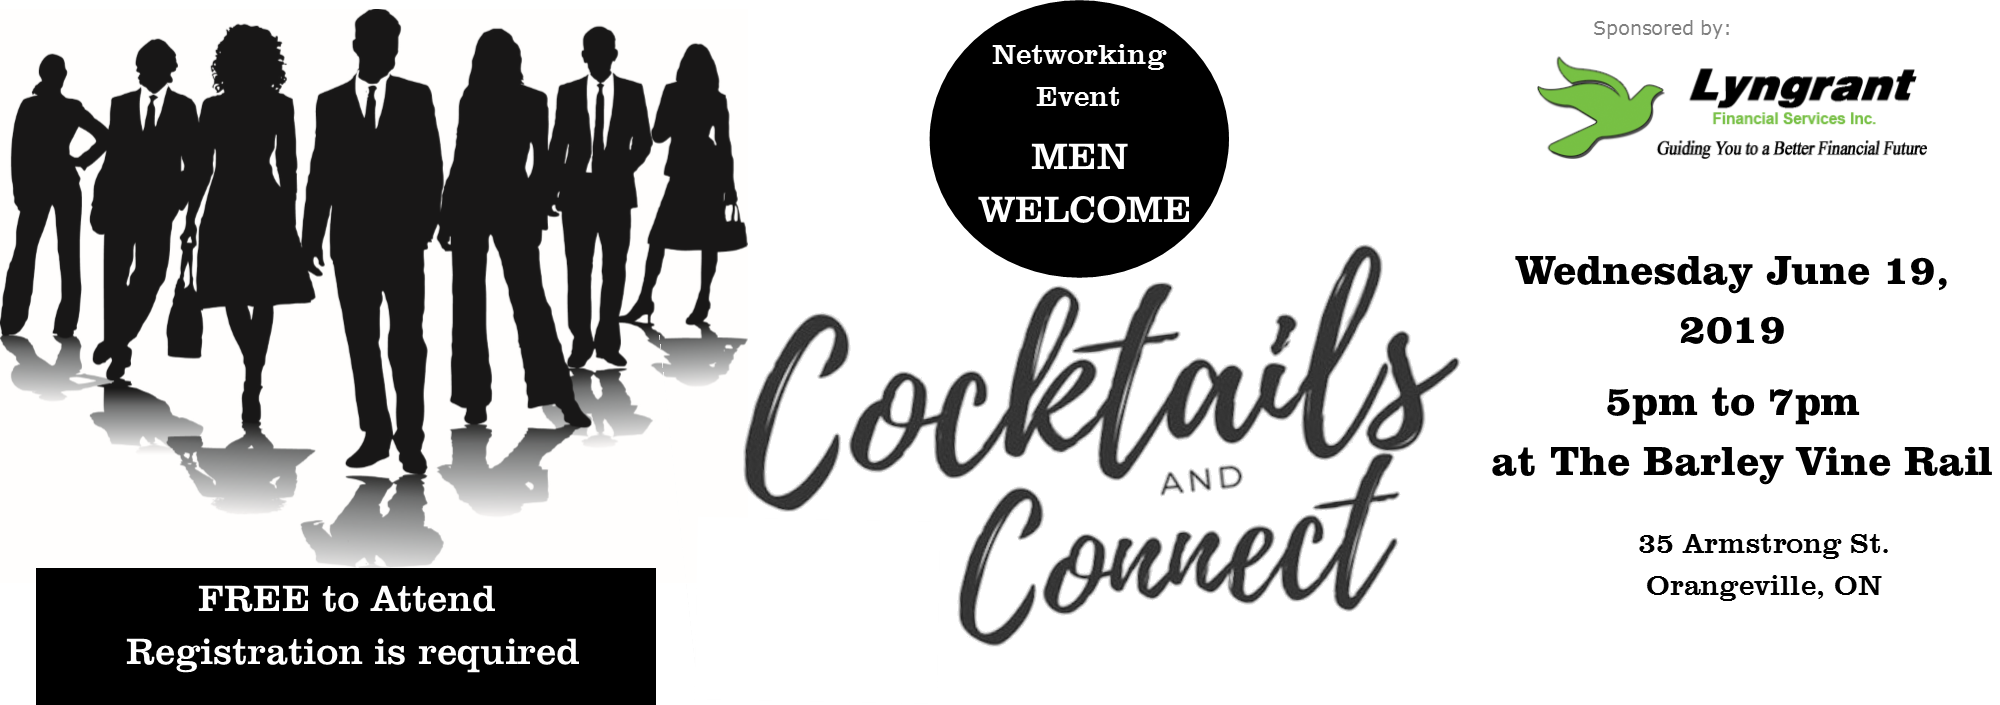 Co-ed networking event